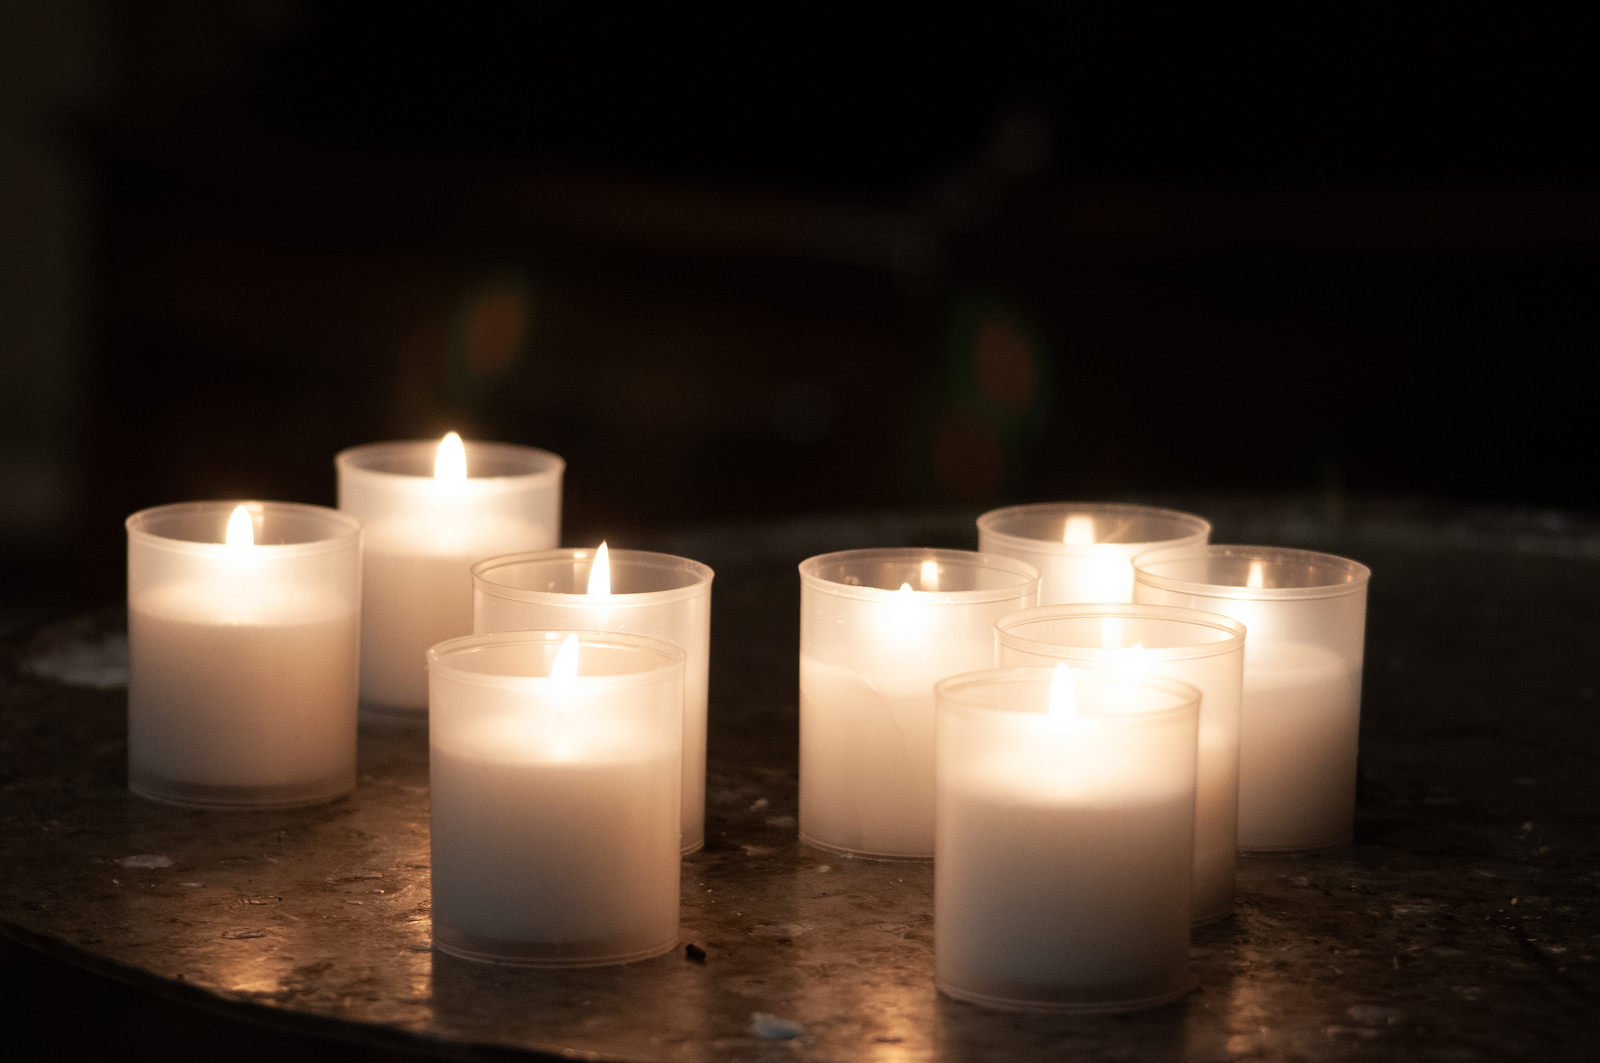 several lit candles in a dark room